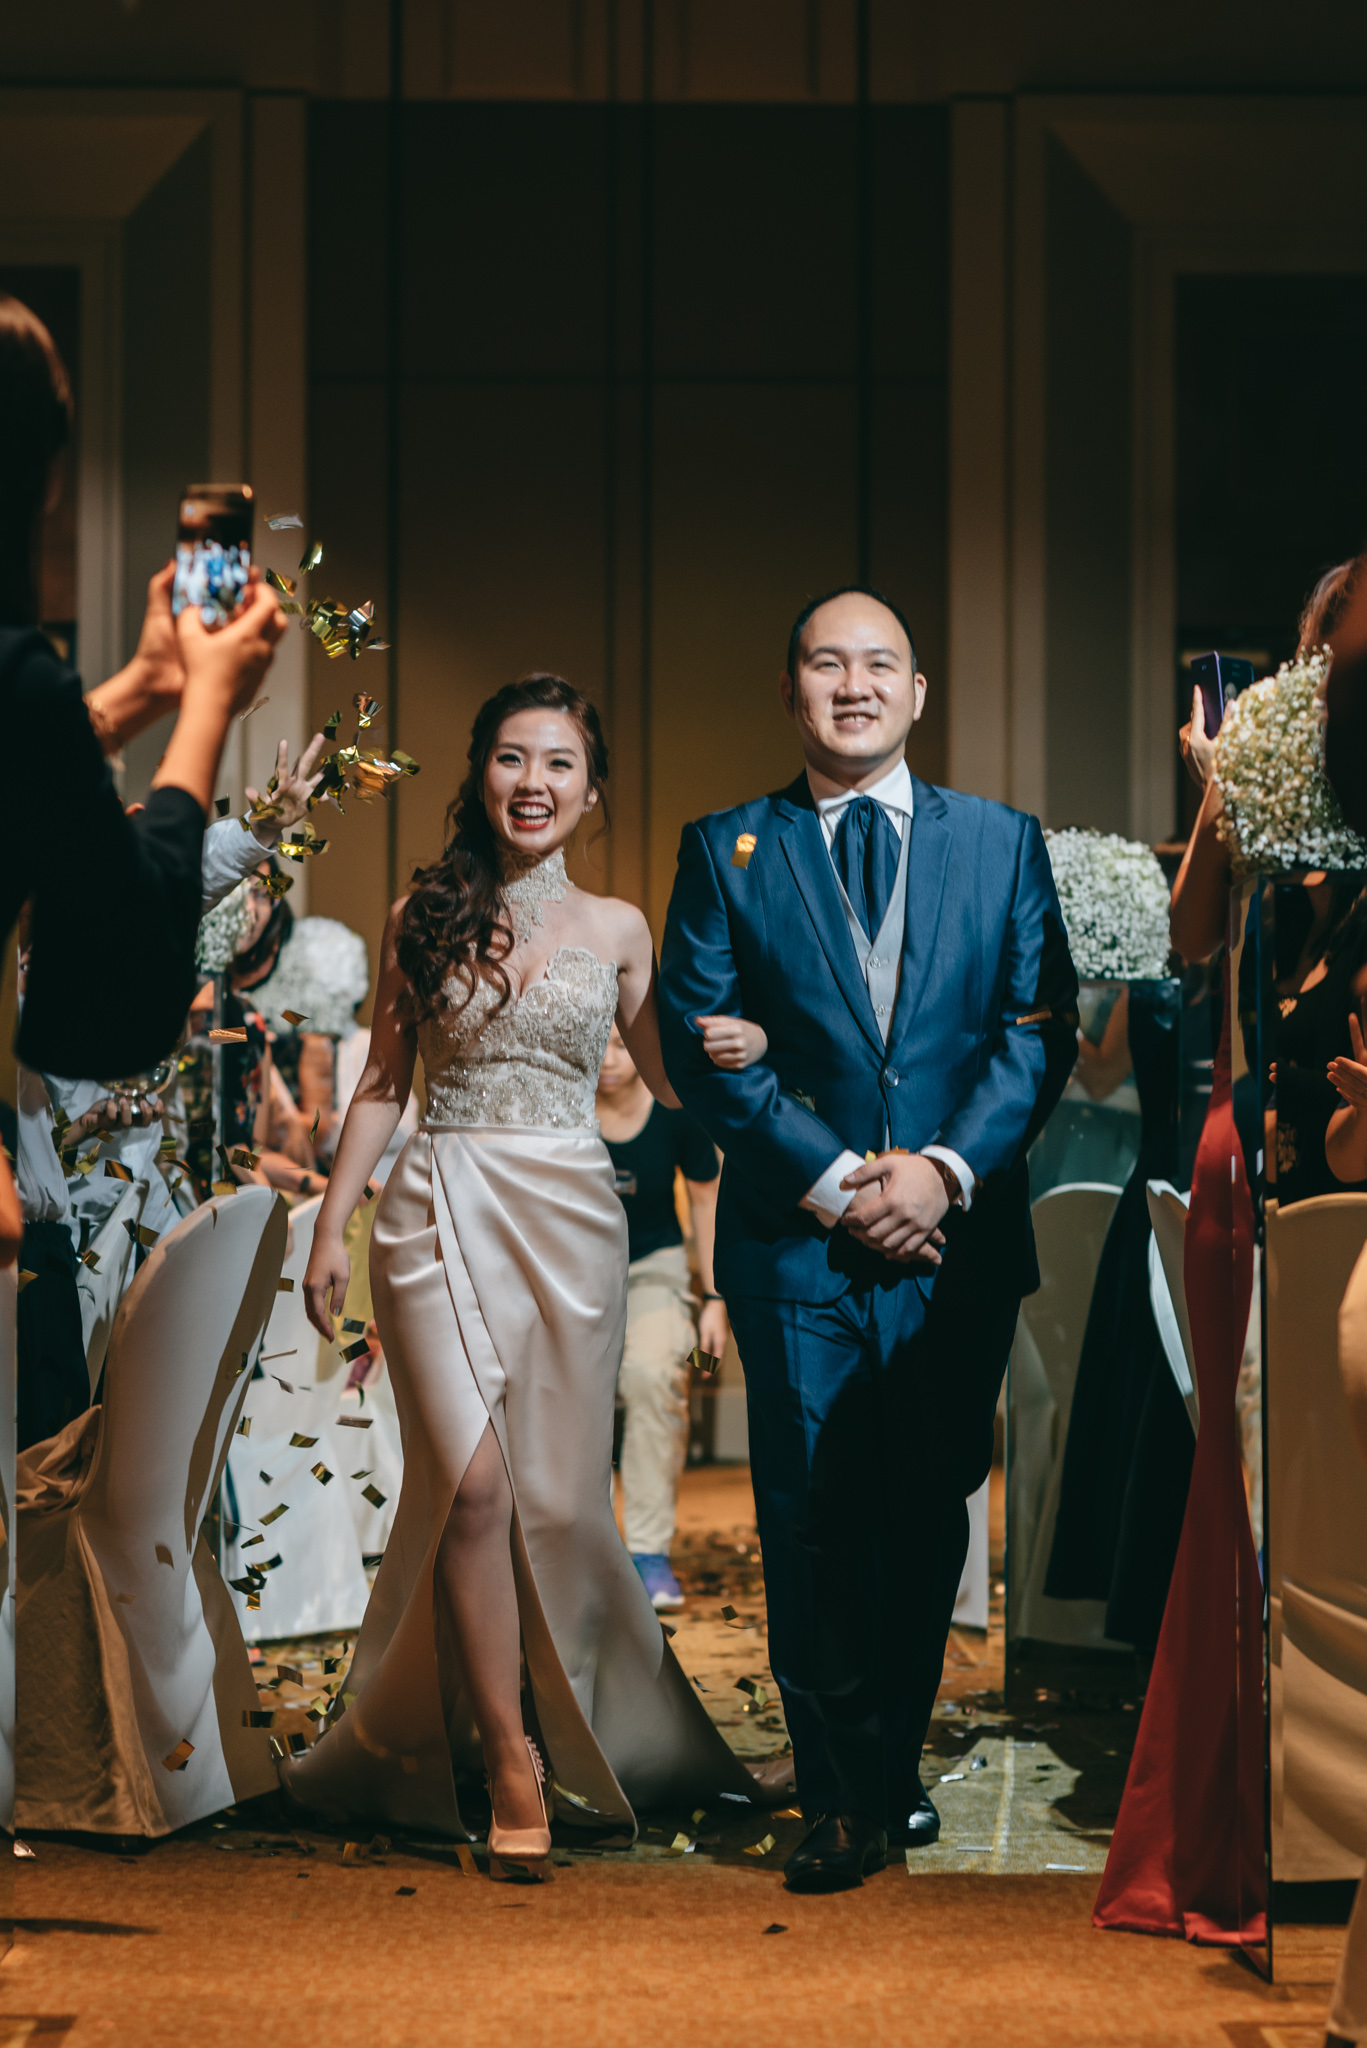 Eunice & Winshire Wedding Day Highlights (resized for sharing) - 198.jpg